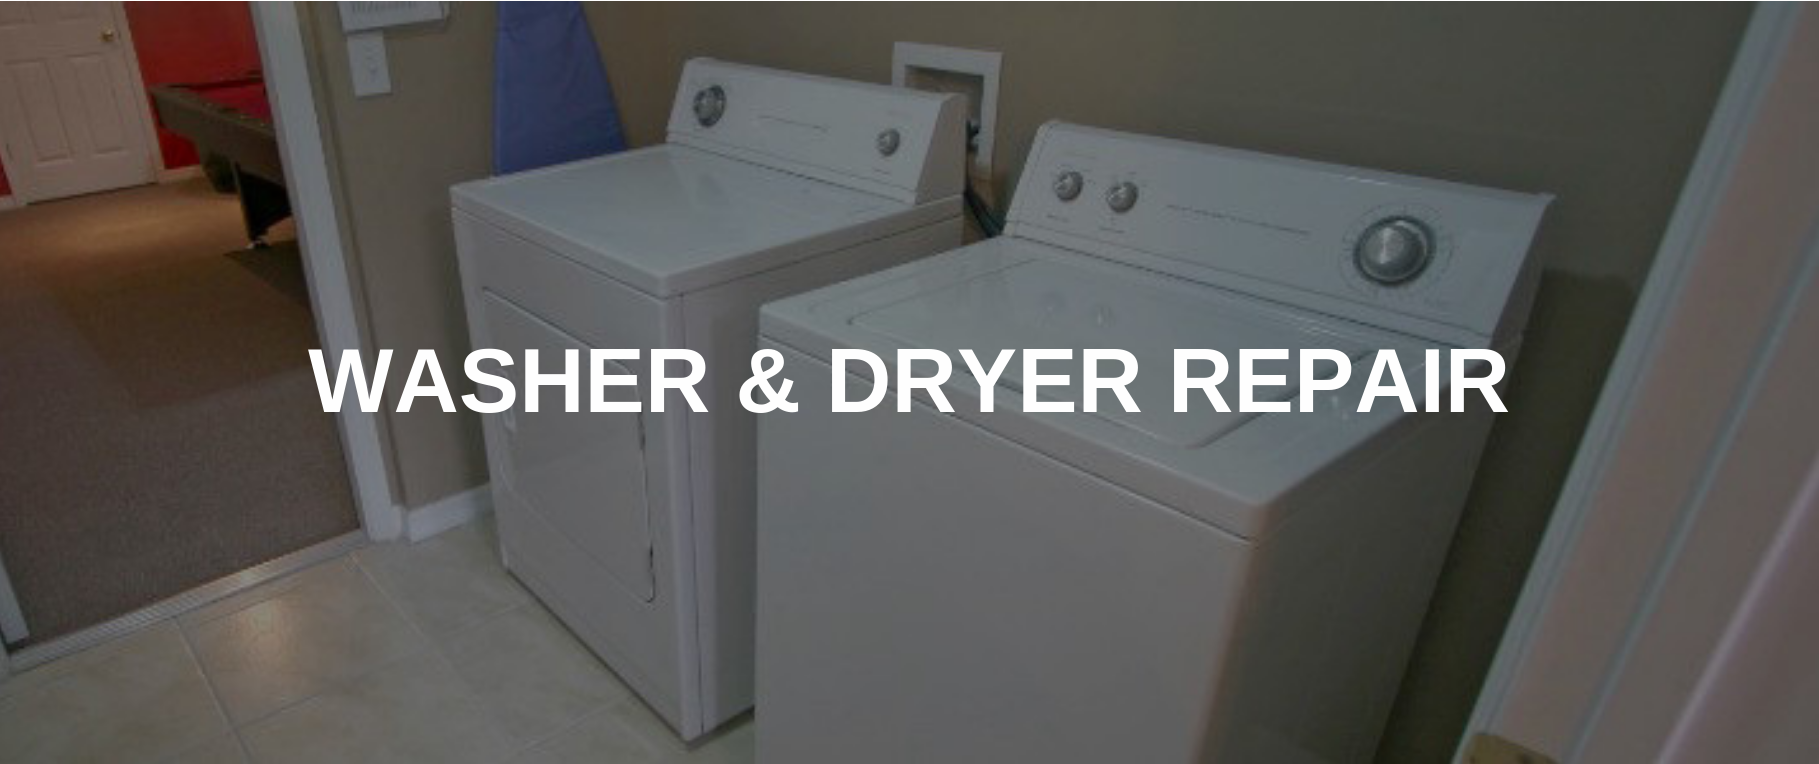 washing machine repair new britain